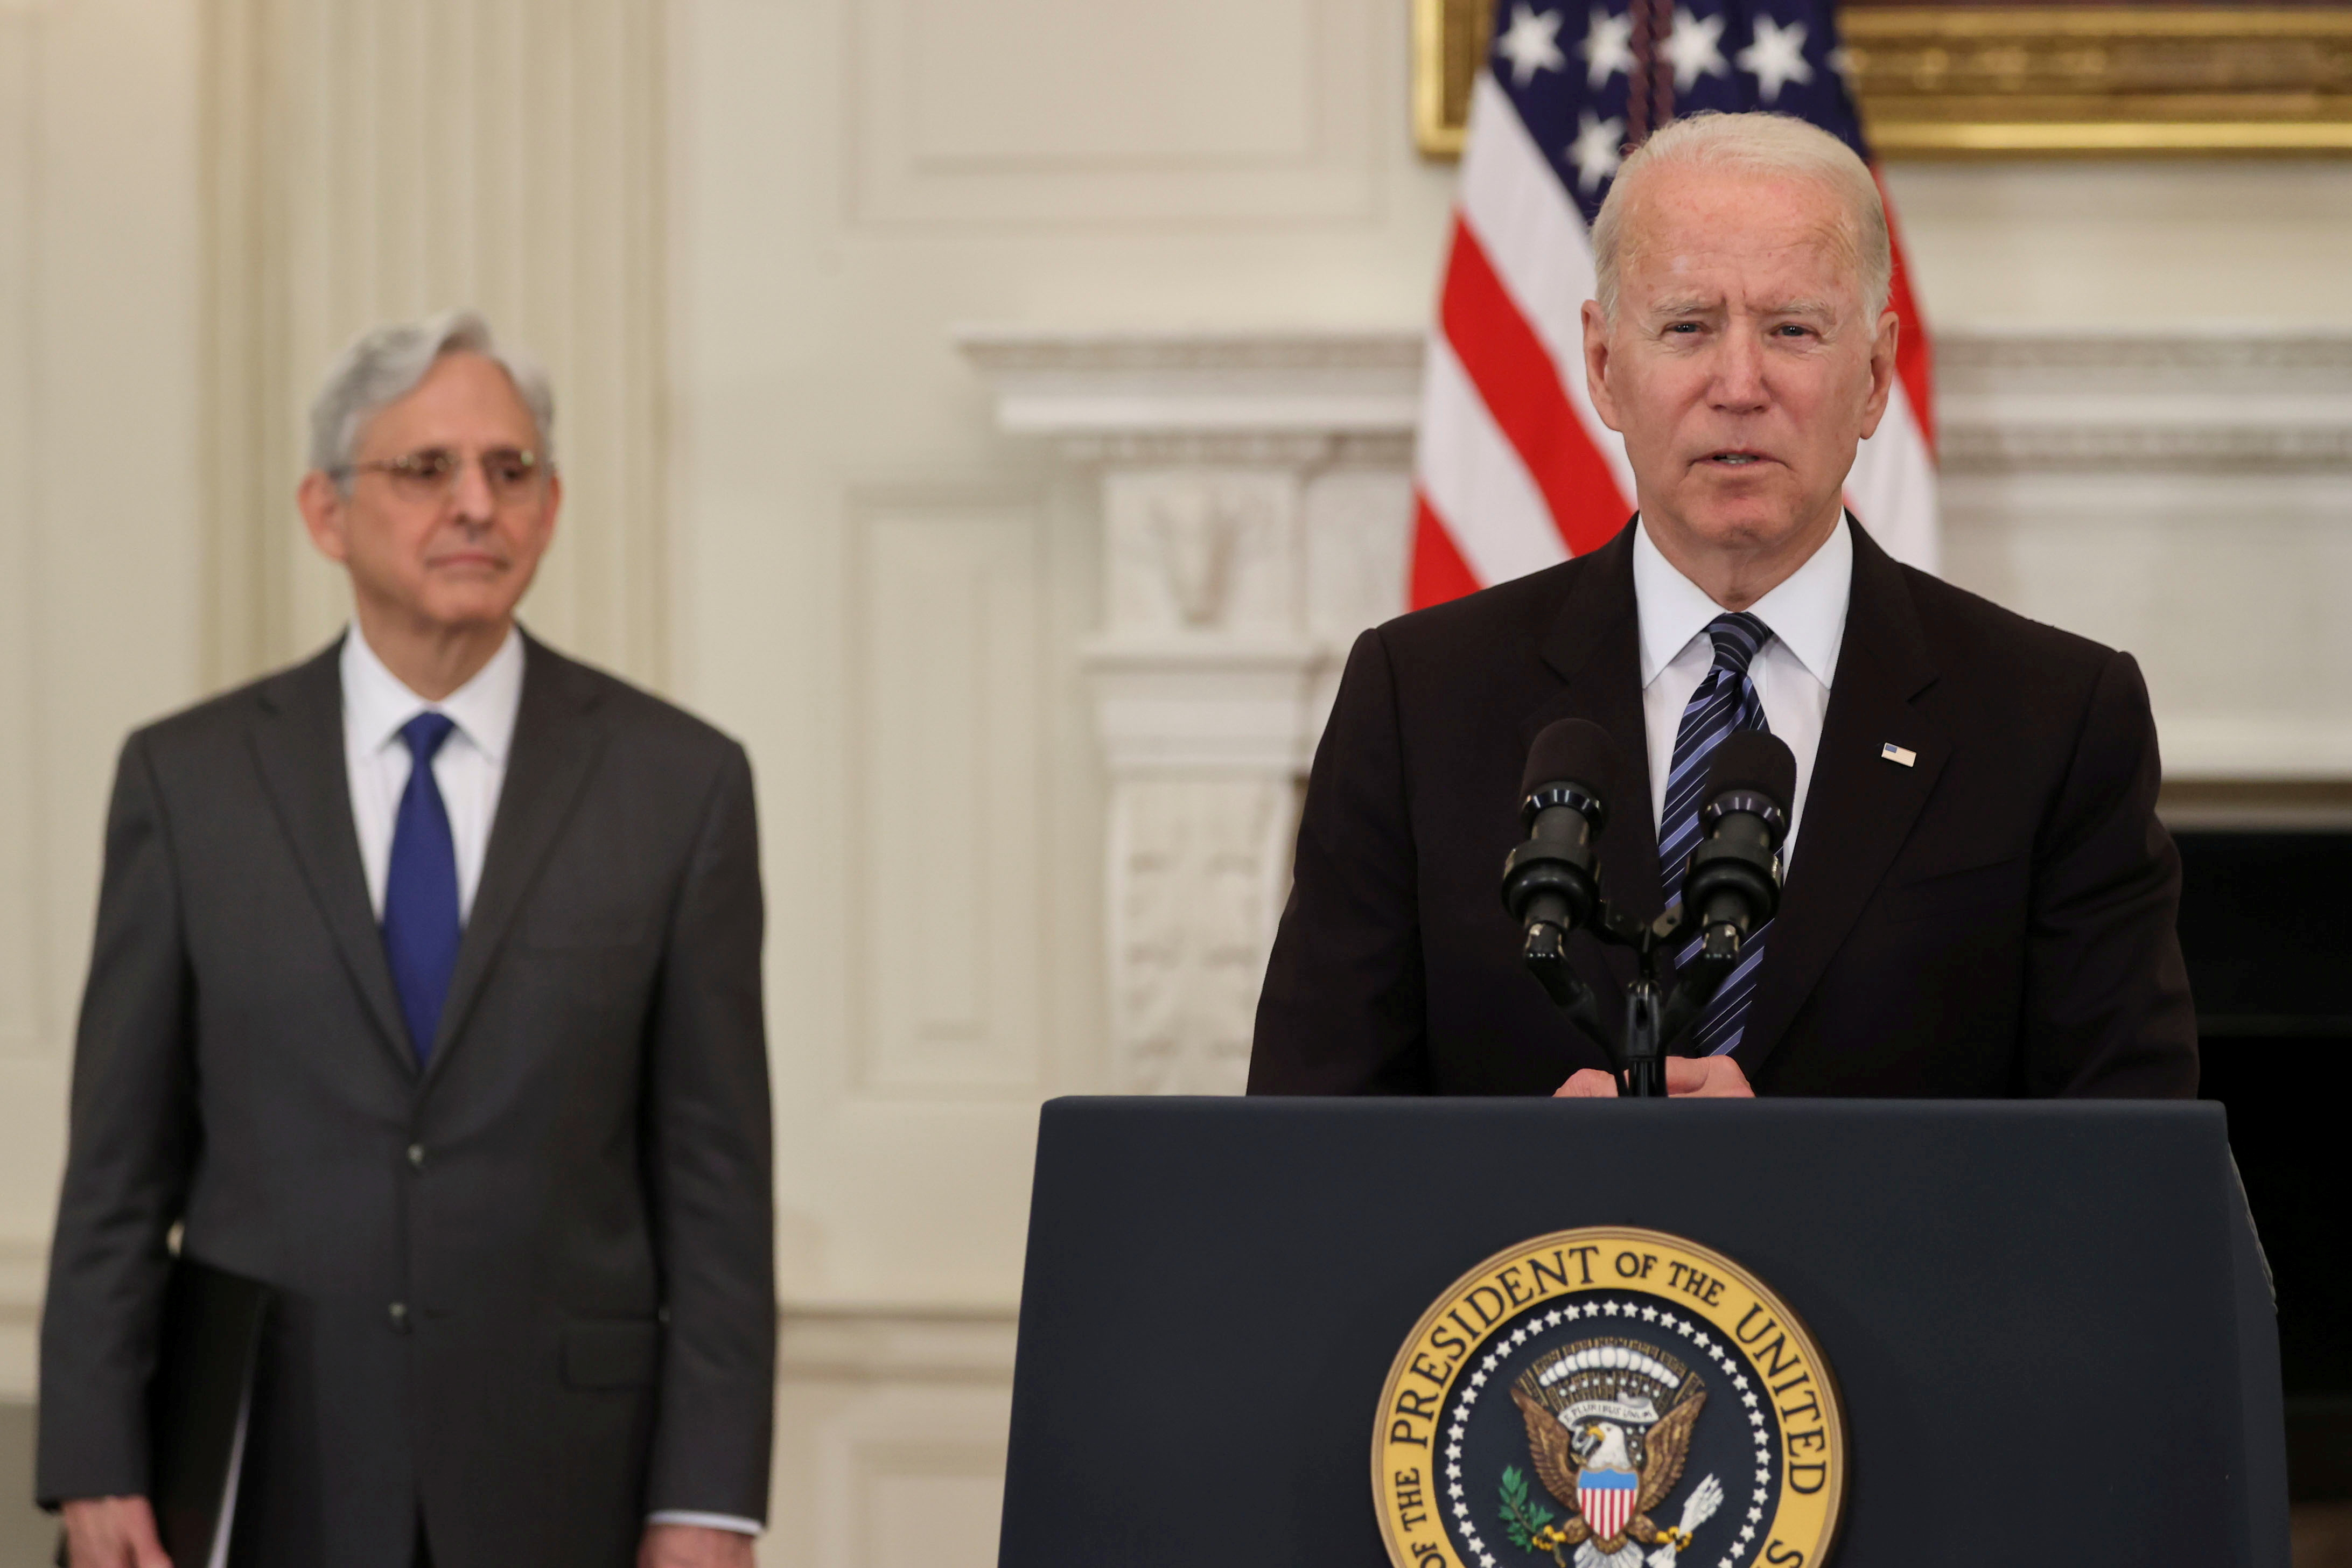 U.S. President Joe Biden delivers remarks accompanied by U.S. Attorney General Merrick Garland, after a roundtable discussion with advisors on steps to curtail U.S. gun violence, at the White House in Washington, U.S. June 23, 2021. REUTERS/Jonathan Ernst/File Photo